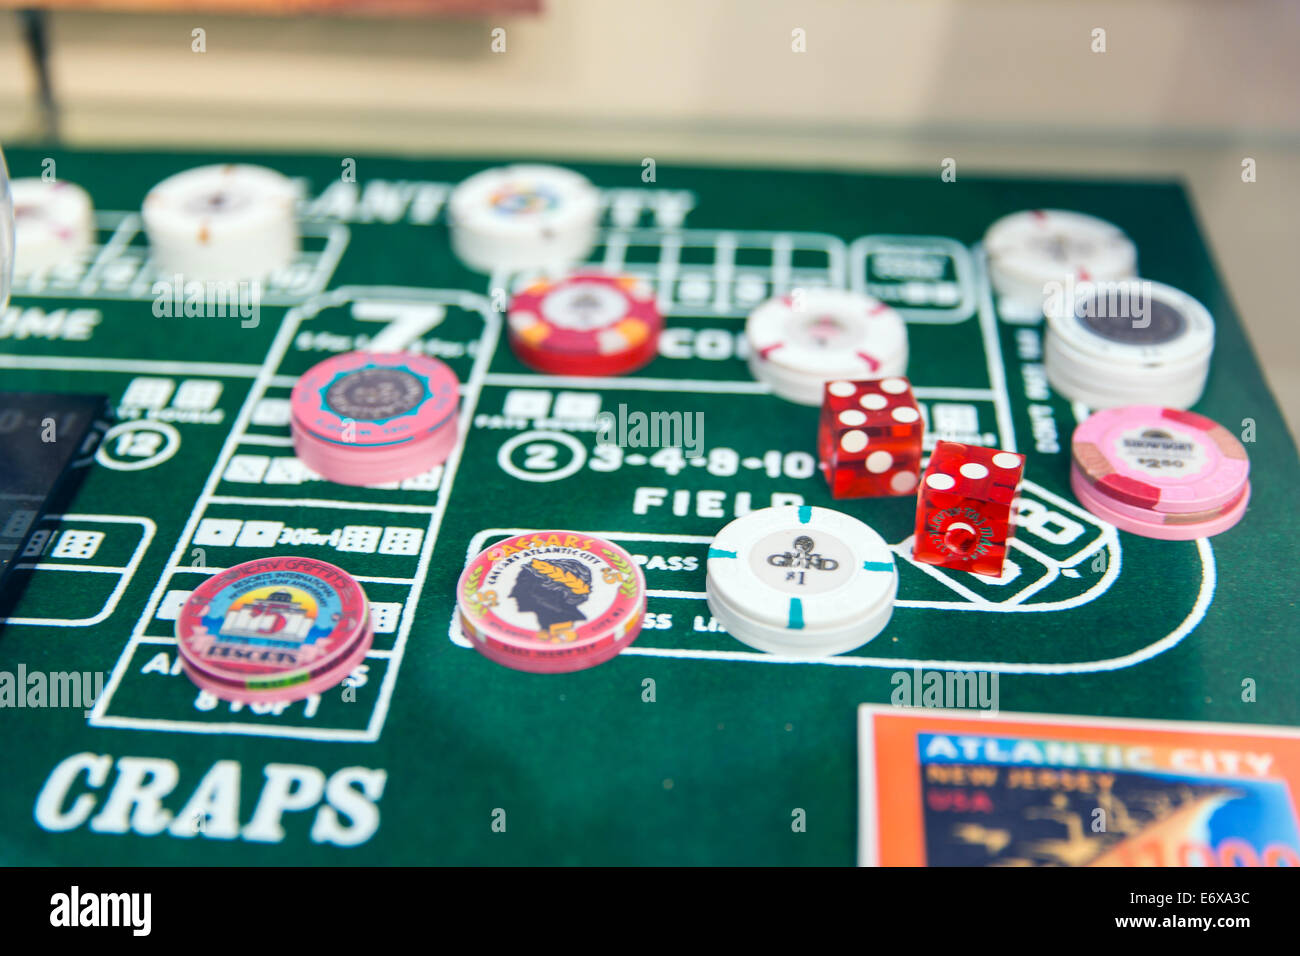 USA,New Jersey,Atlantic City, craps table - Stock Image